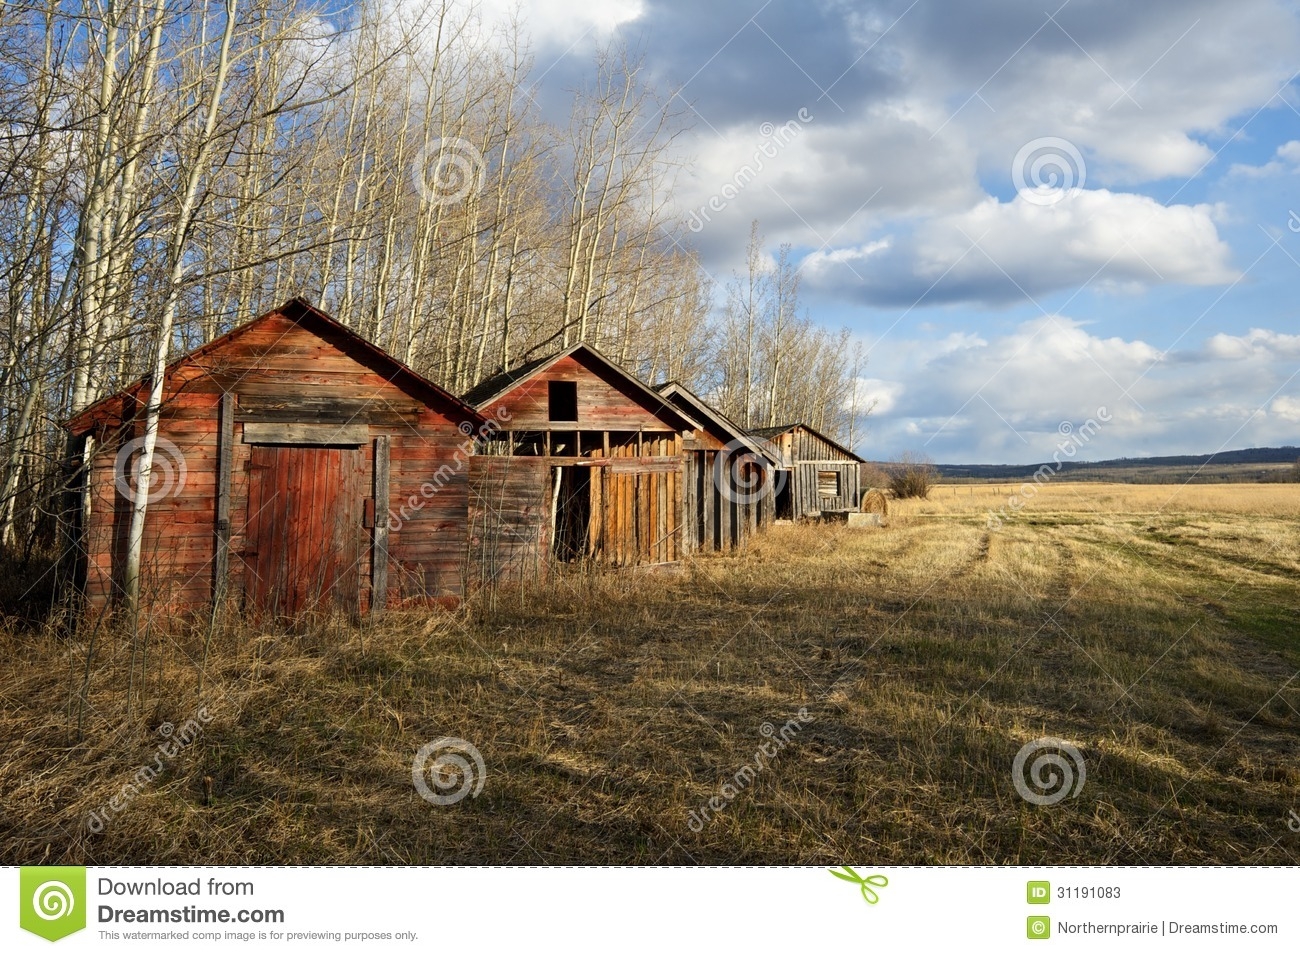 Old barns and sheds stock image image of empty ancient for Sheds and barns